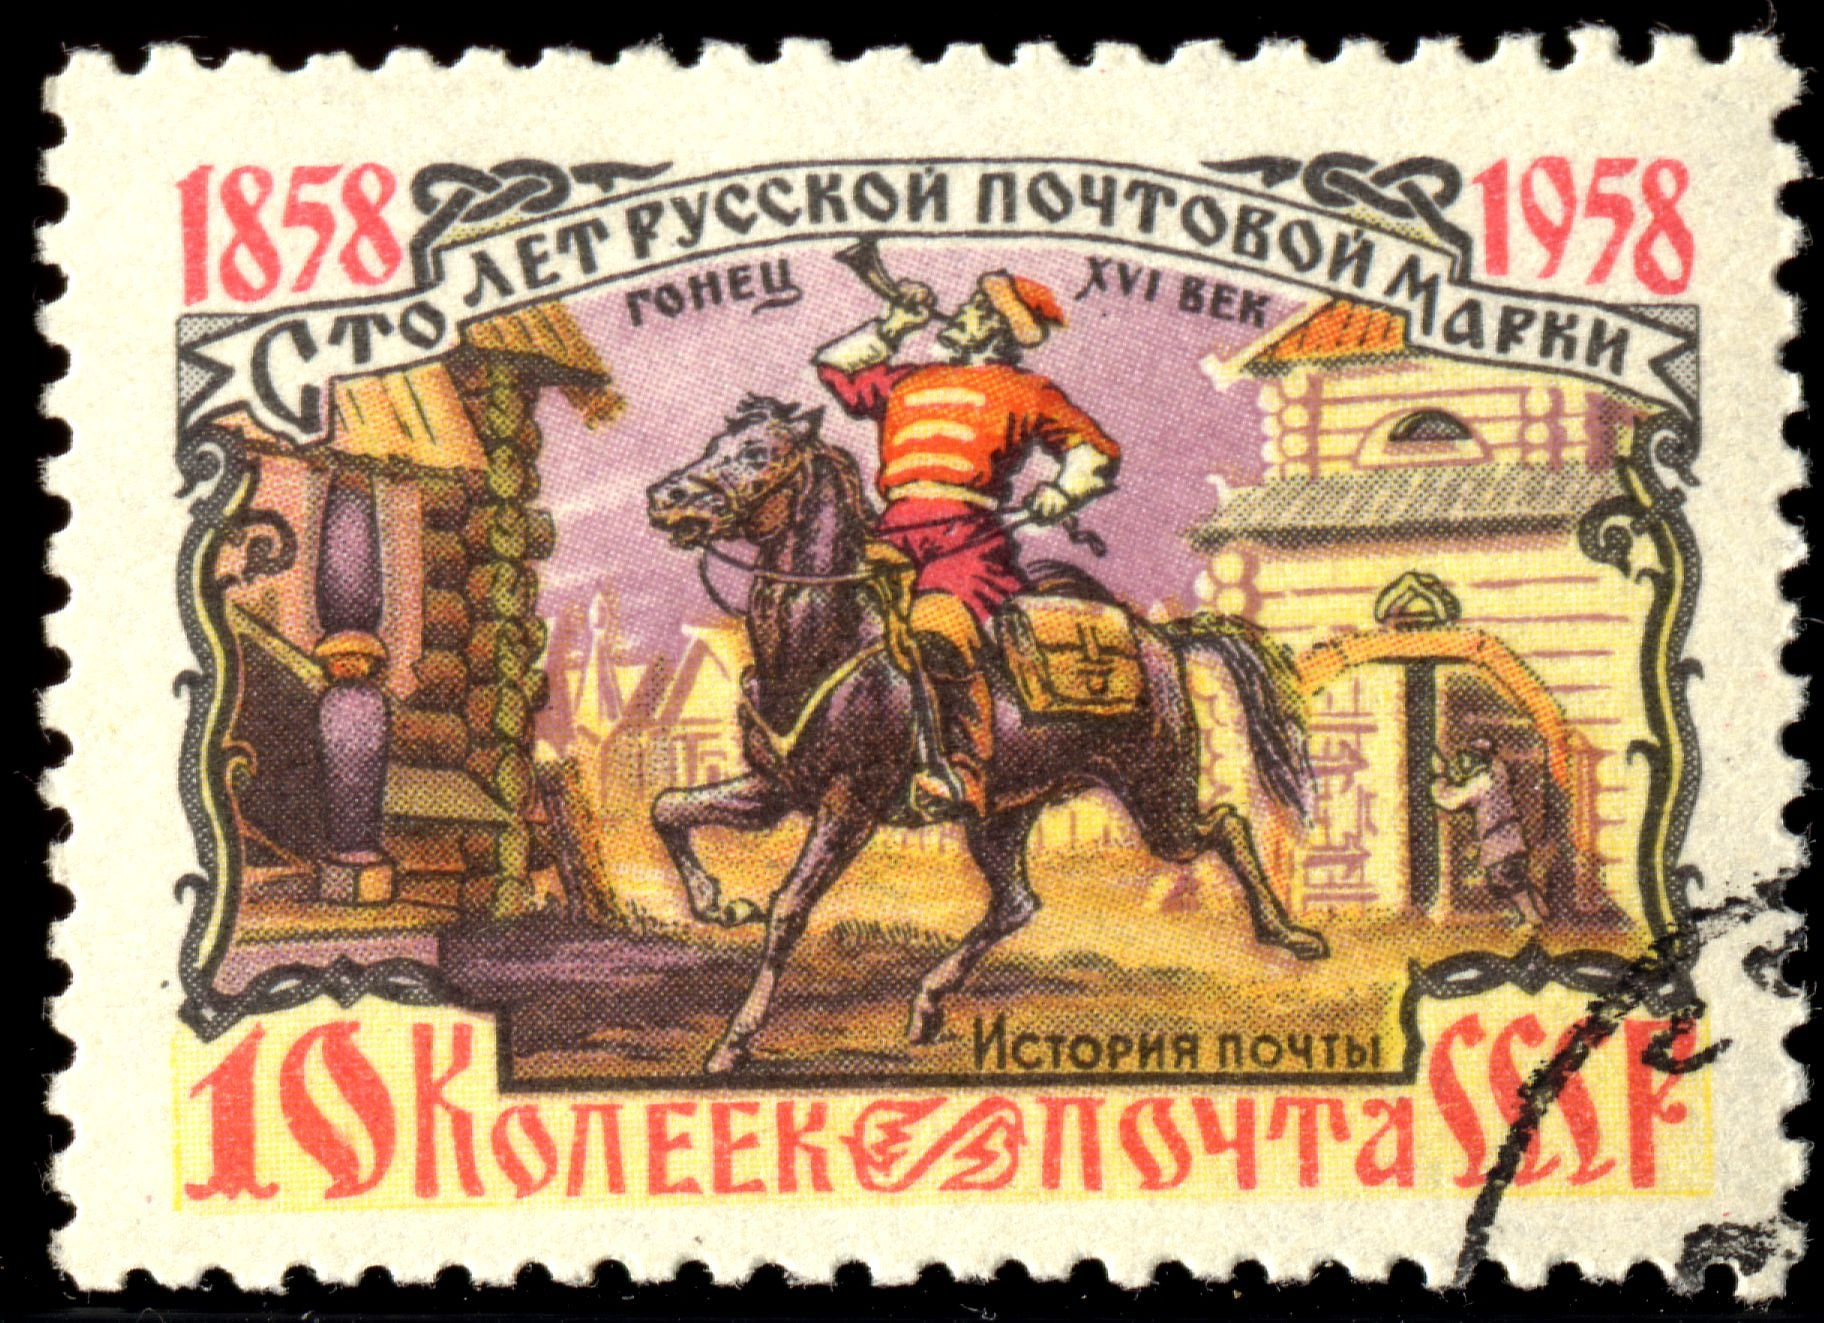 A 1958 Stamp Of The Soviet Union Depicting A 16th Century Mail